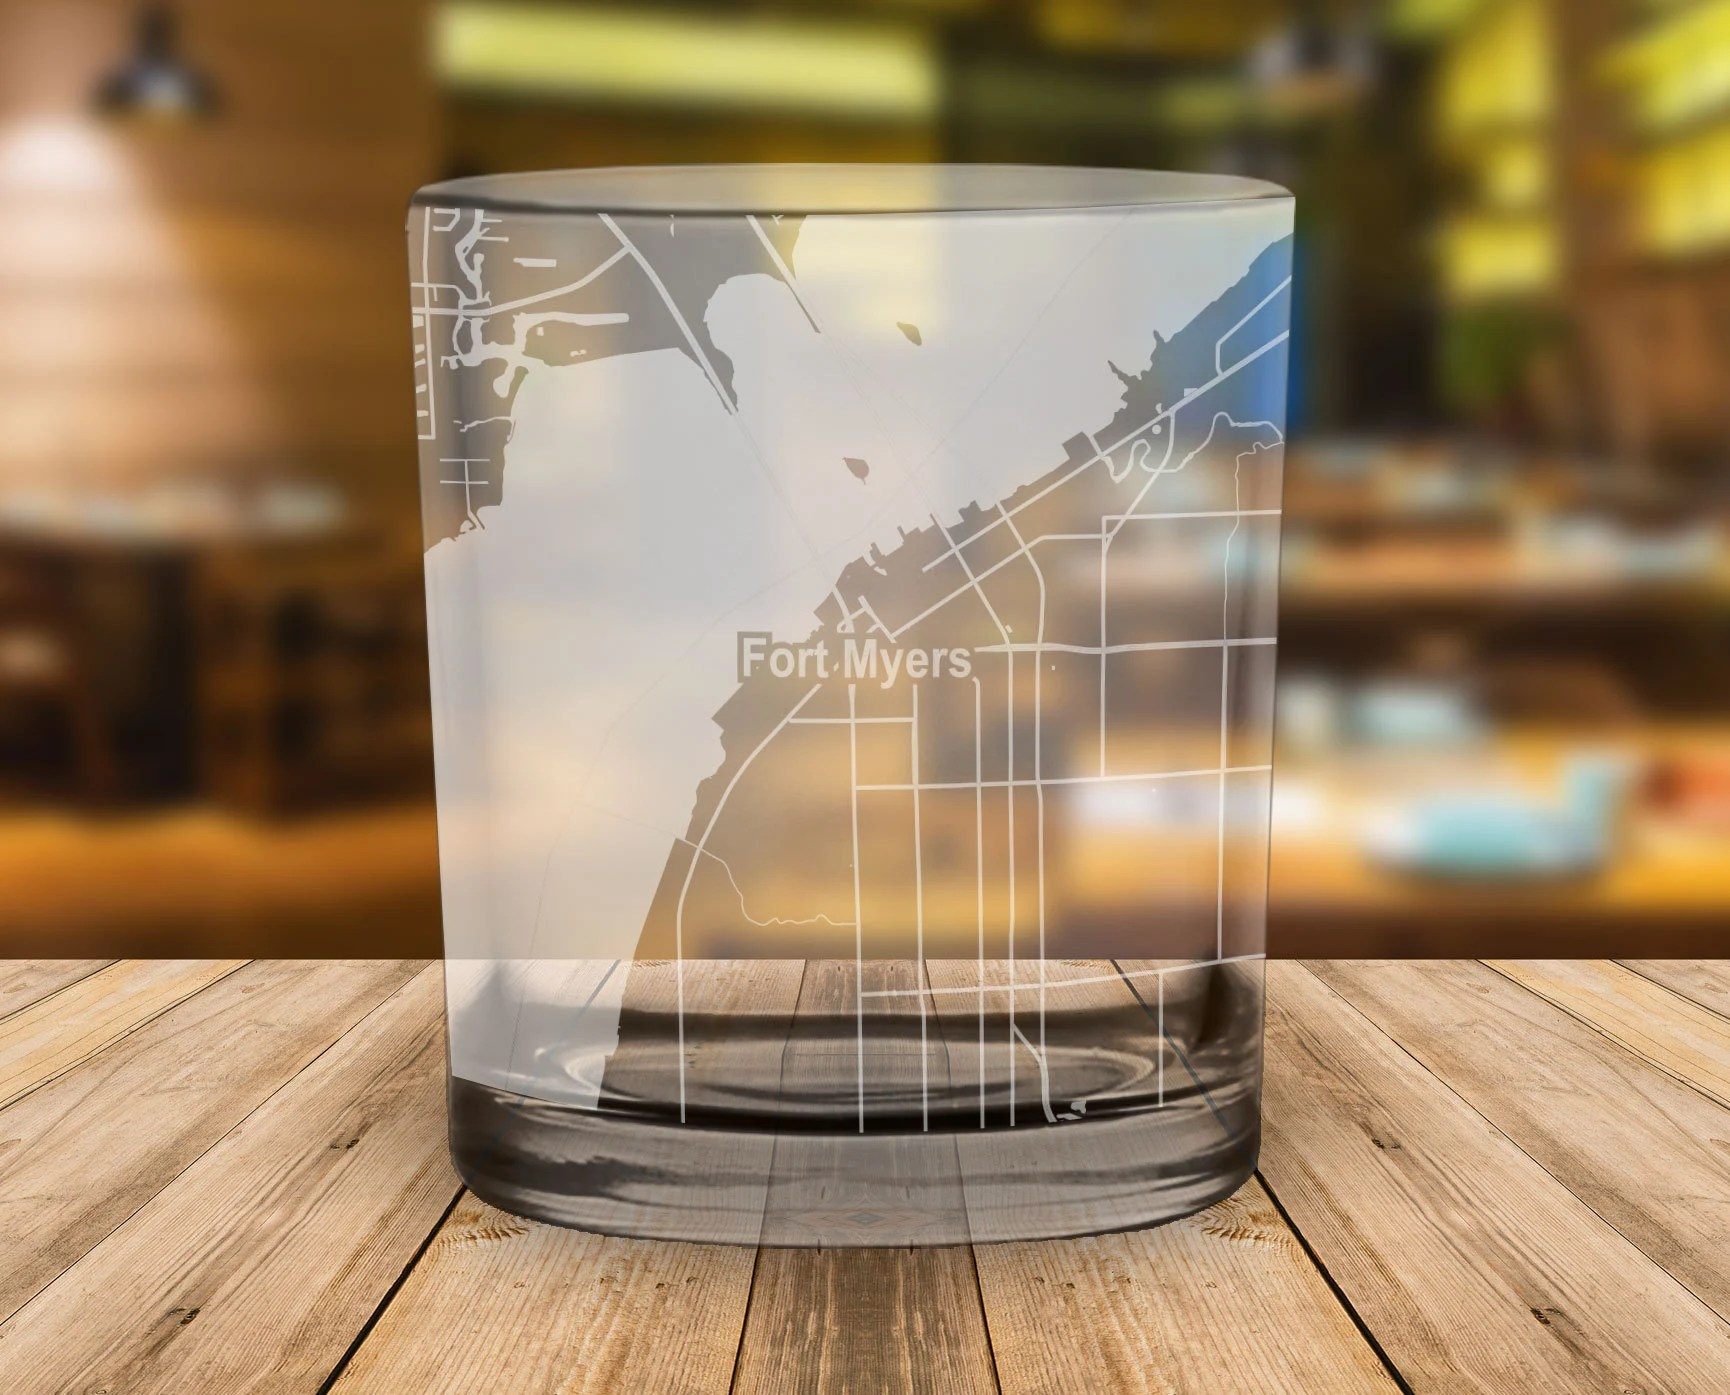 Whiskey Glasses Myer Fort Myers Florida Map Whiskey Glass Gift